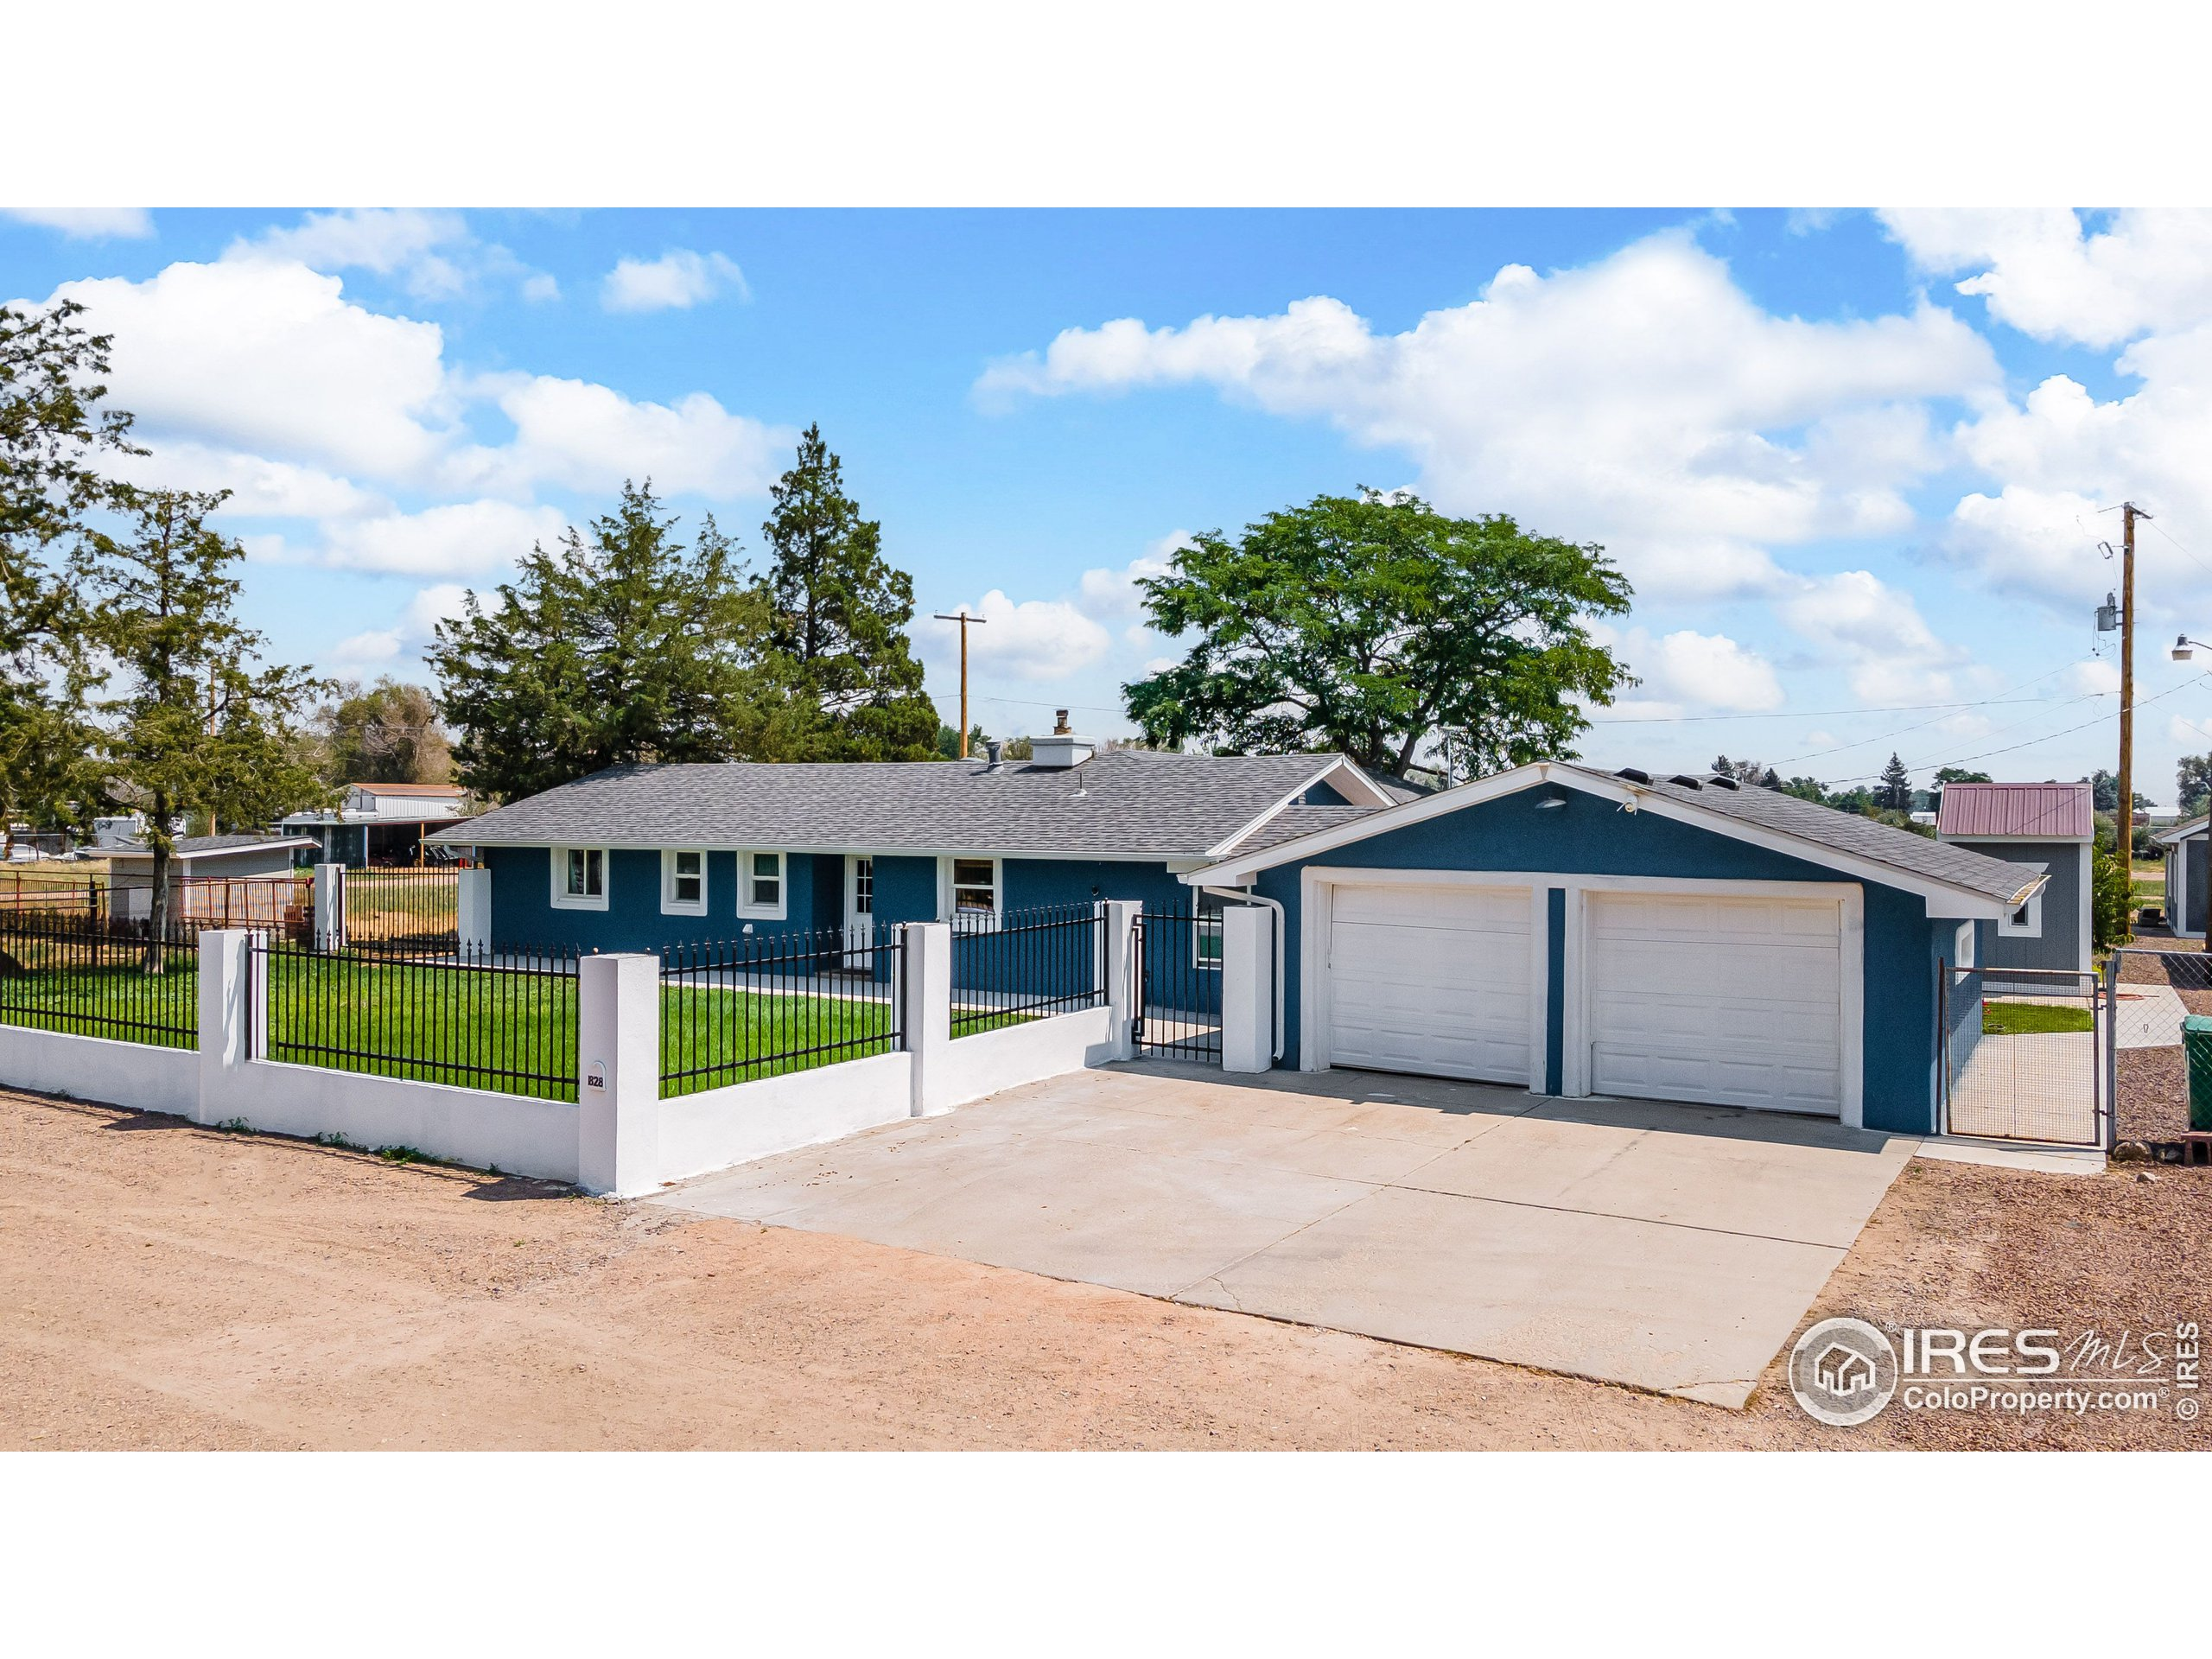 1828 Birch Ave, Greeley, CO 80631